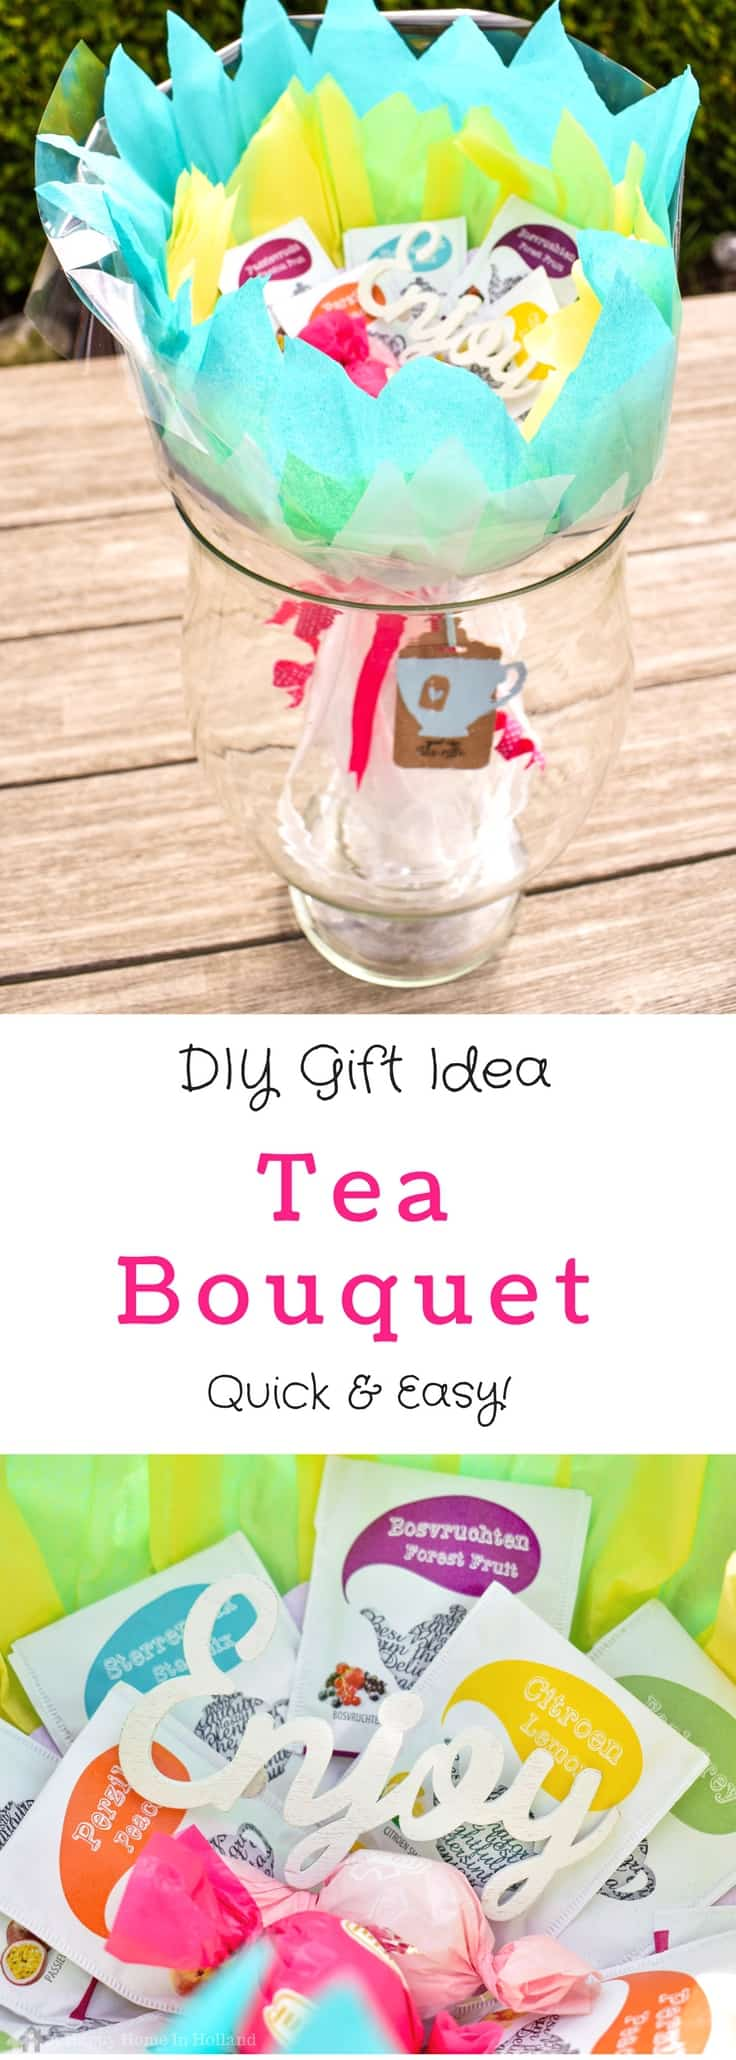 DIY Tea Bouquet - A quick and easy budget gift idea: perfect for mother's day, teacher appreciation and get well gifts